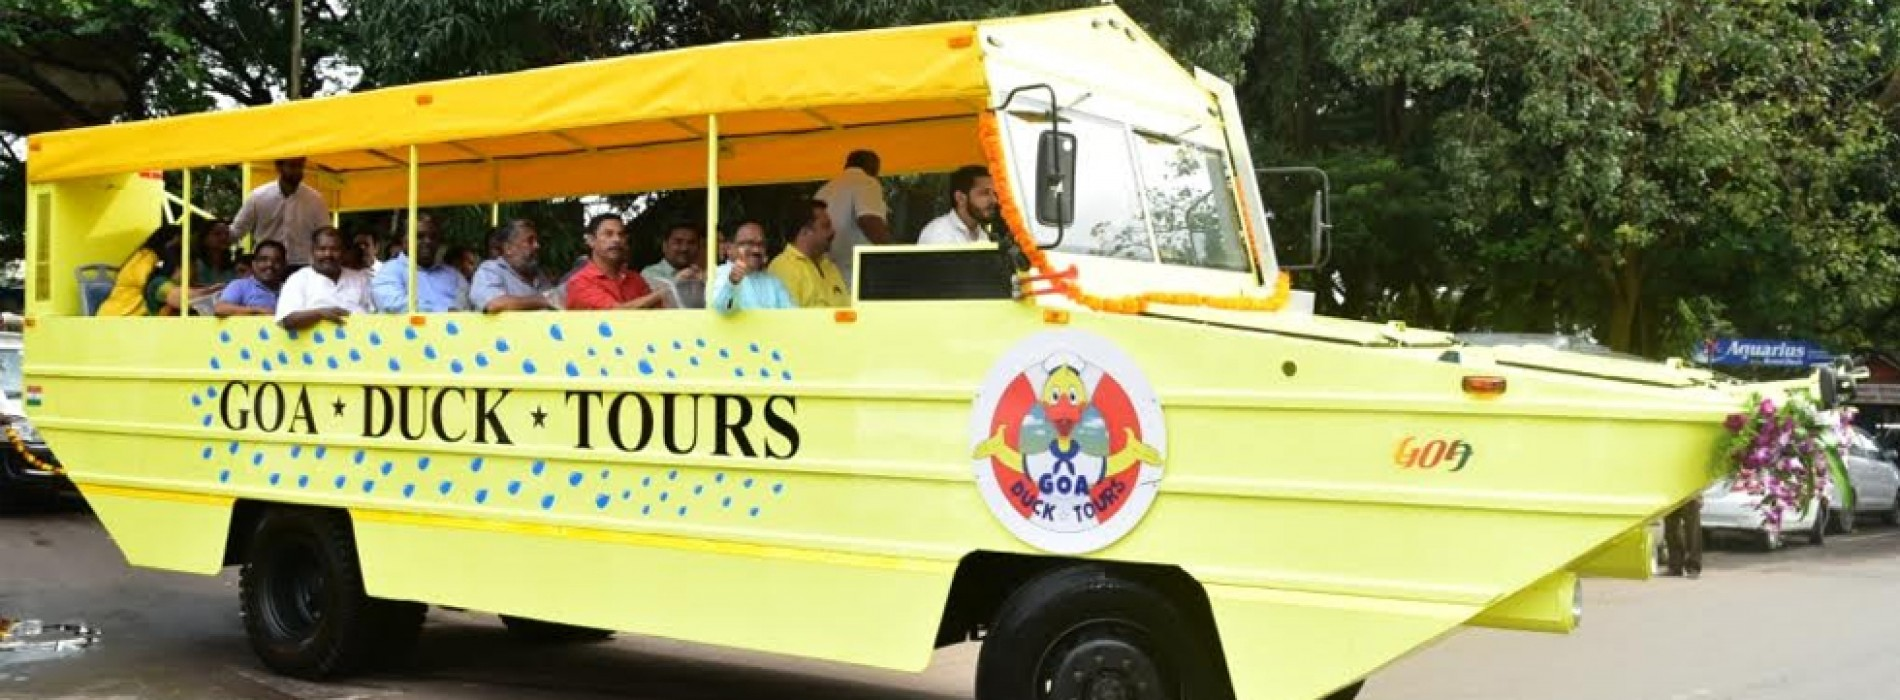 Goa first state to introduce Duck Boat Tours in India